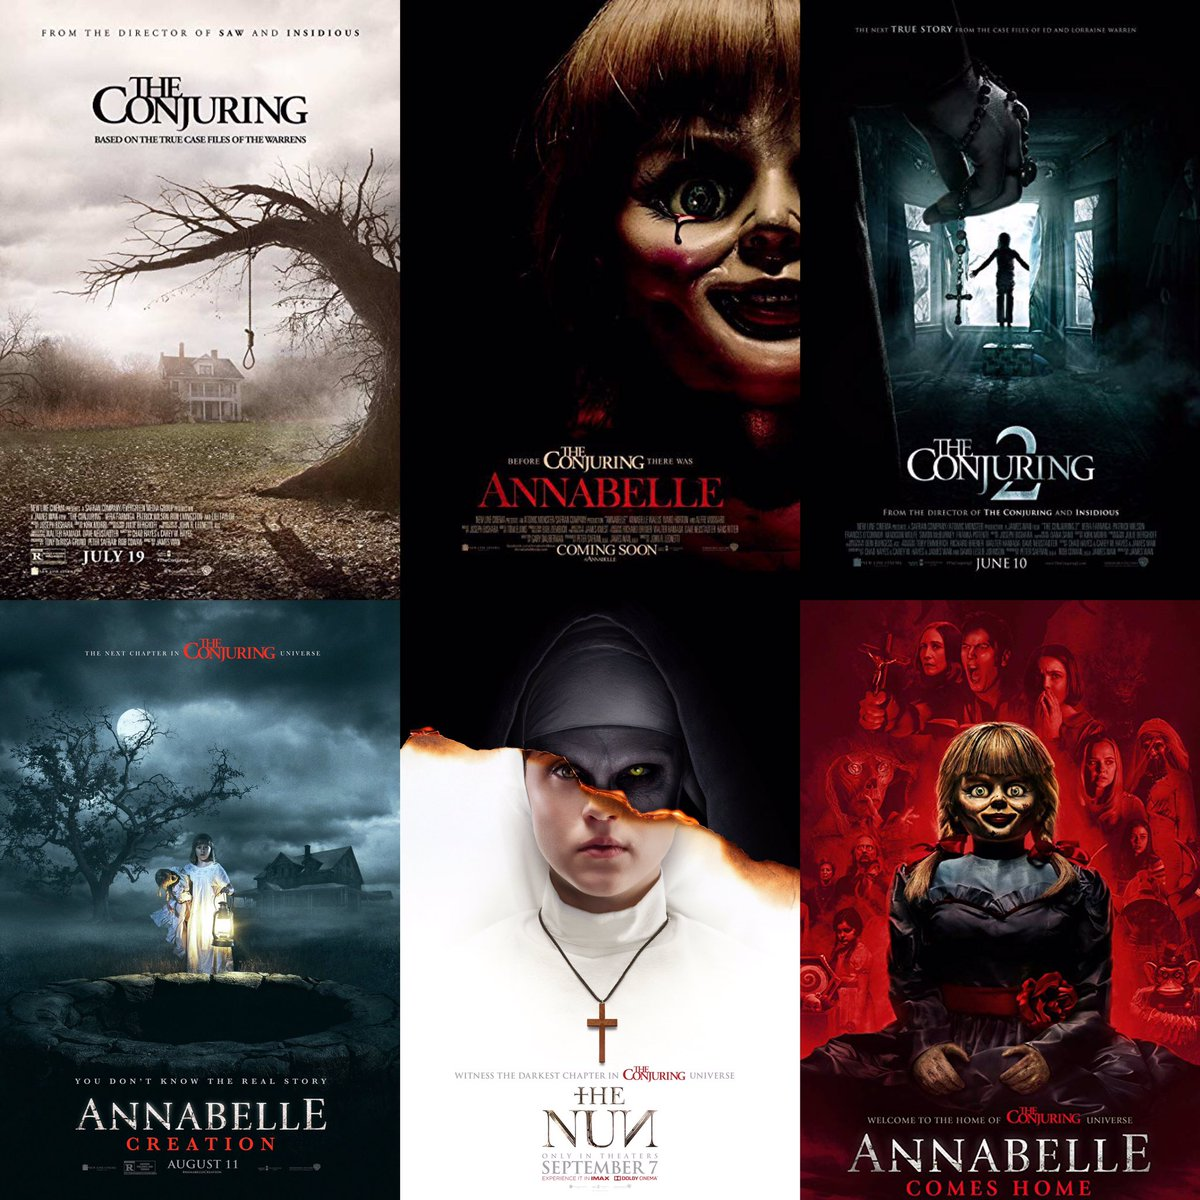 What is your favorite film in the #Conjuring universe? 😎